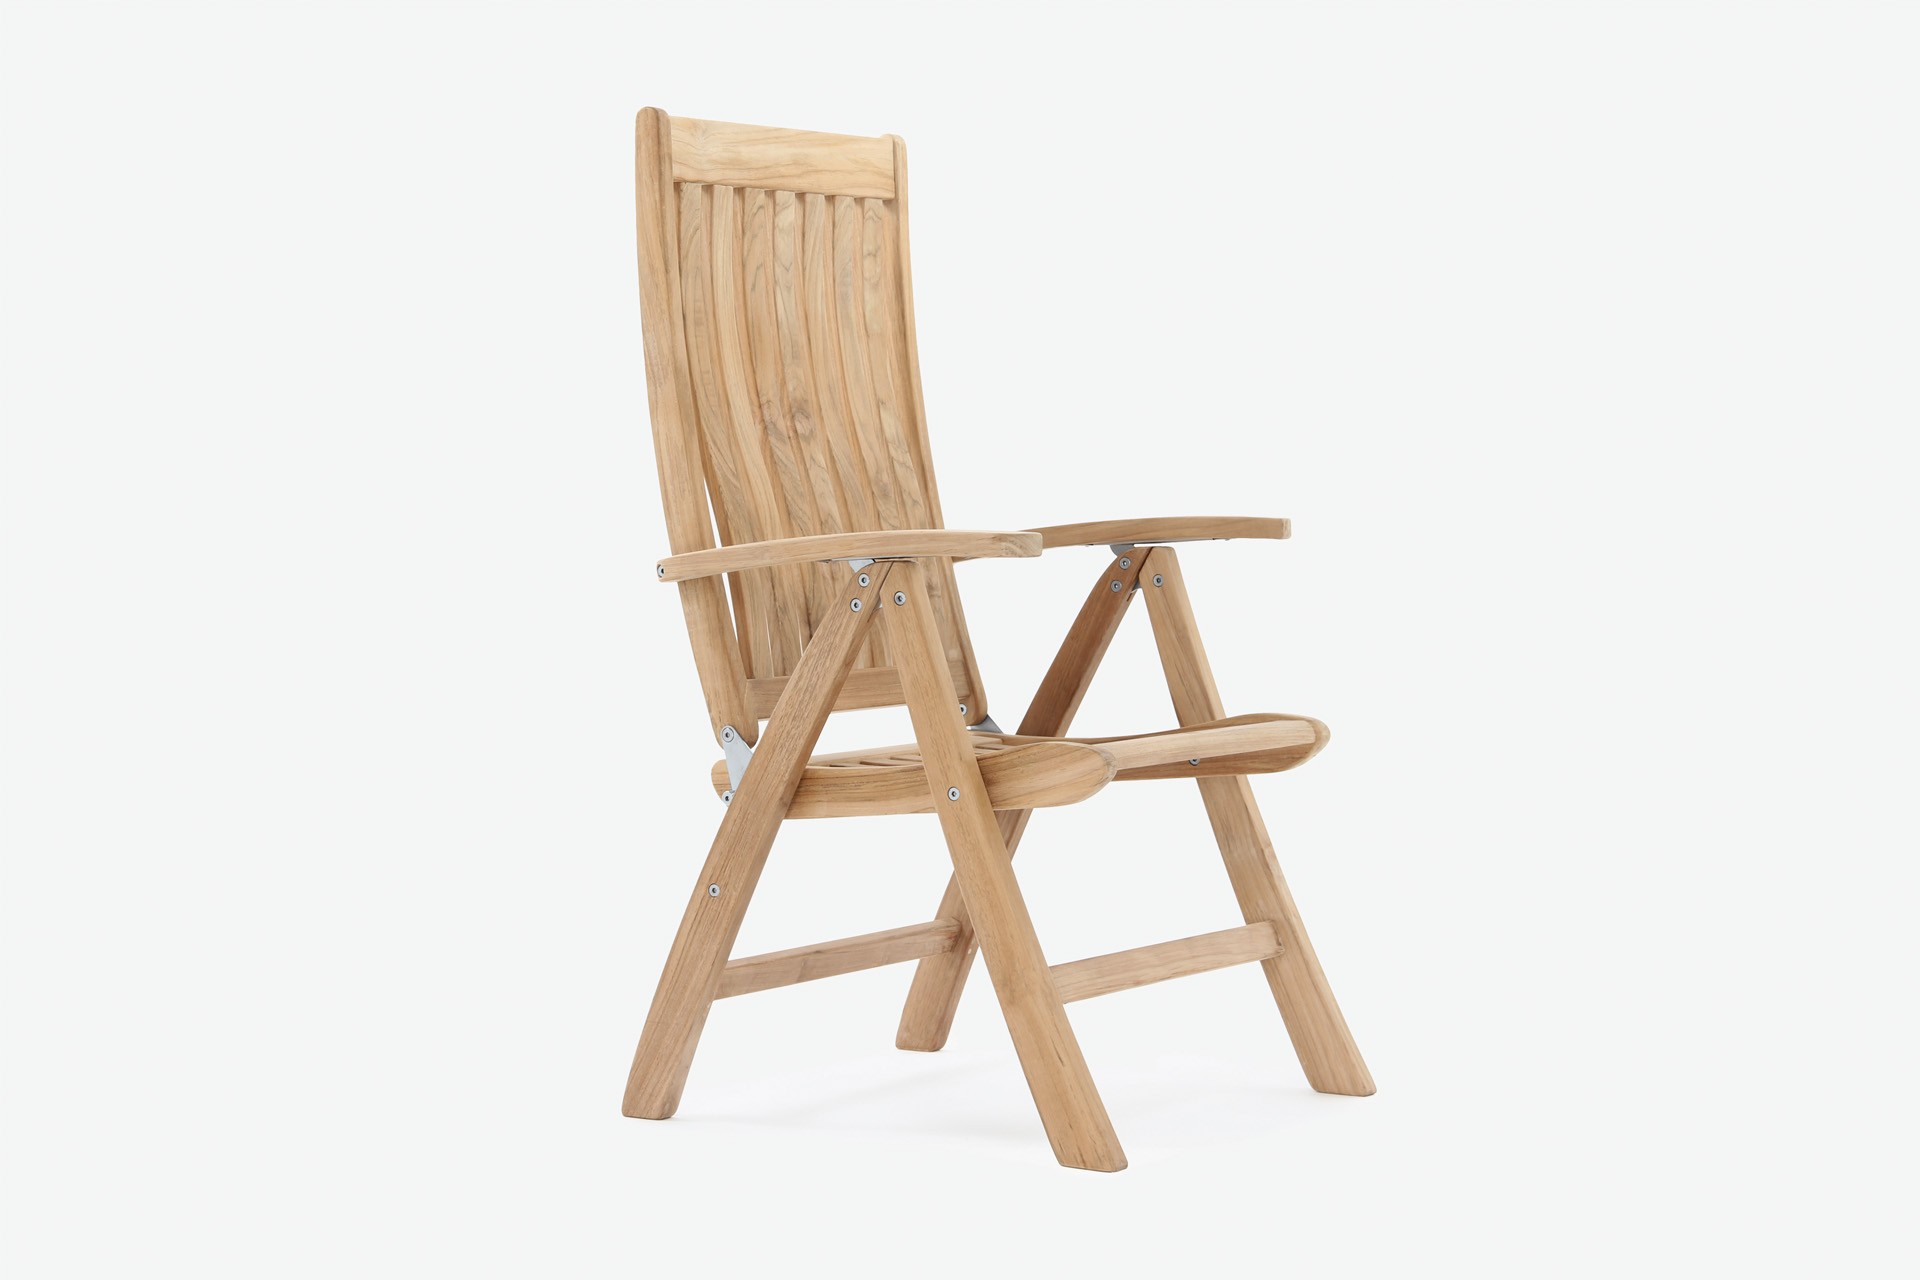 Tremendous Manhattan Recliner Teak Machost Co Dining Chair Design Ideas Machostcouk